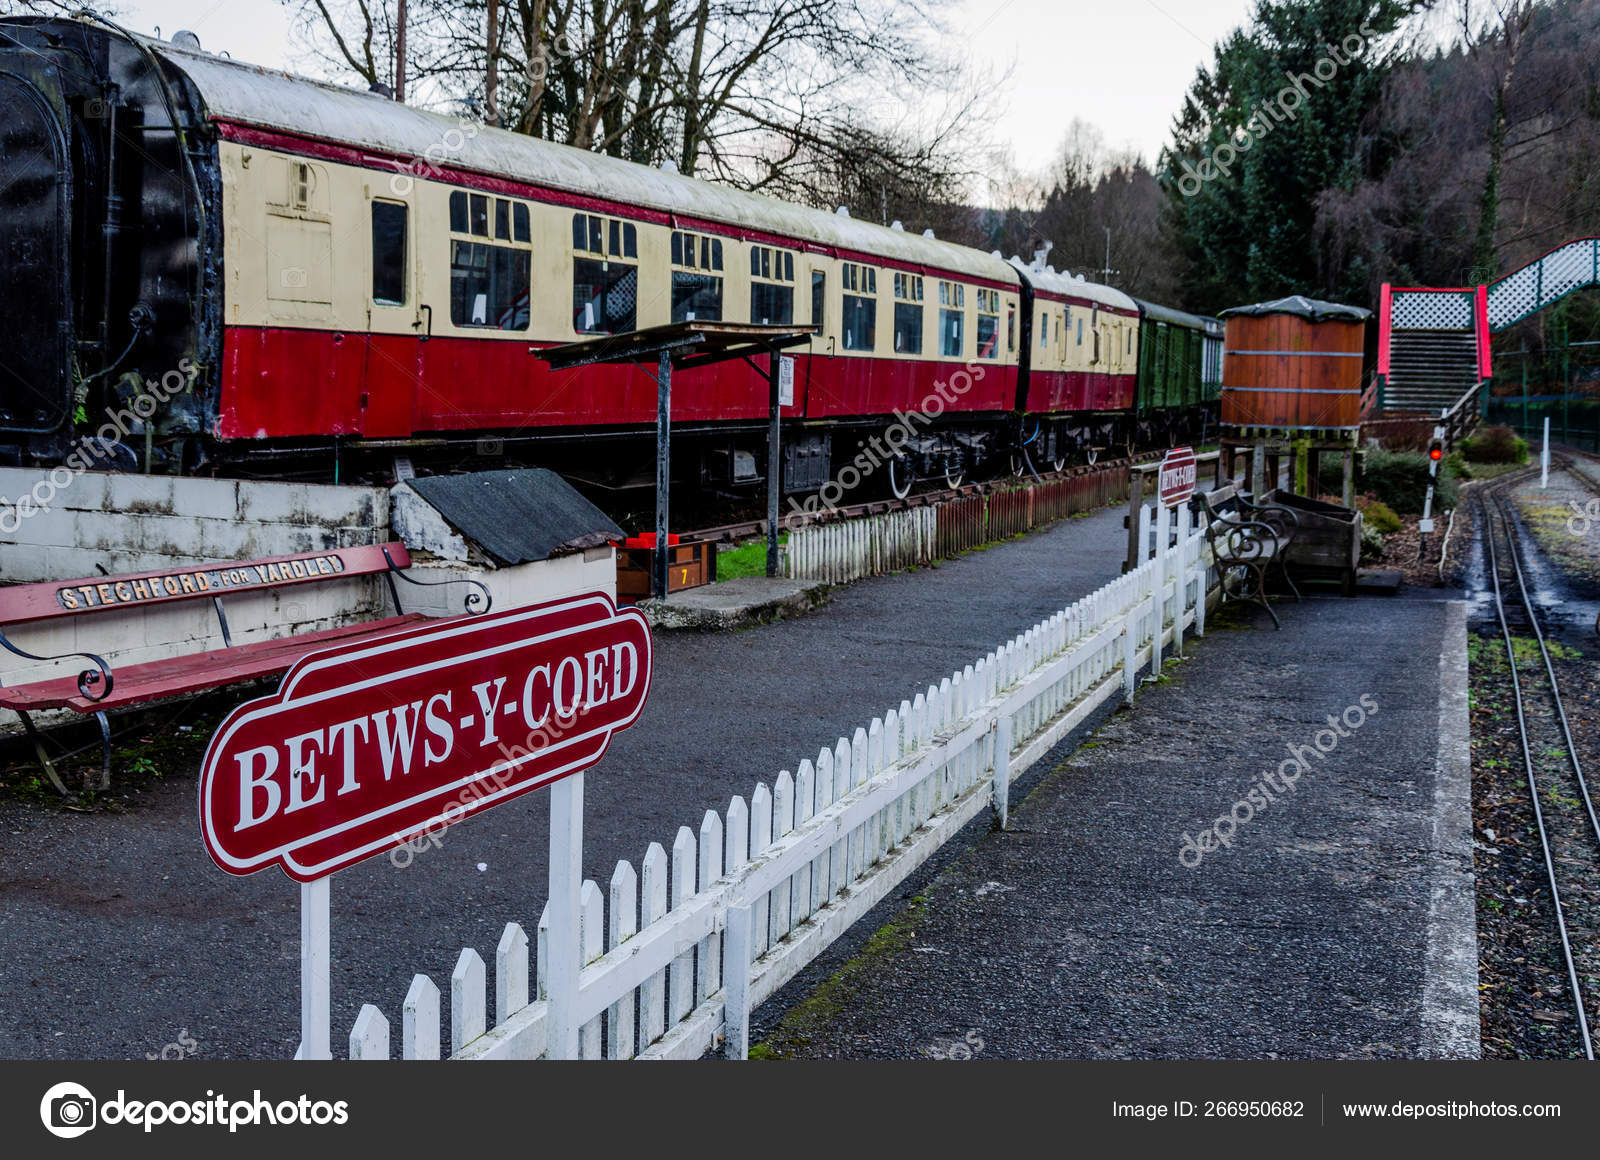 Railway museum in North Wales  – Stock Editorial Photo